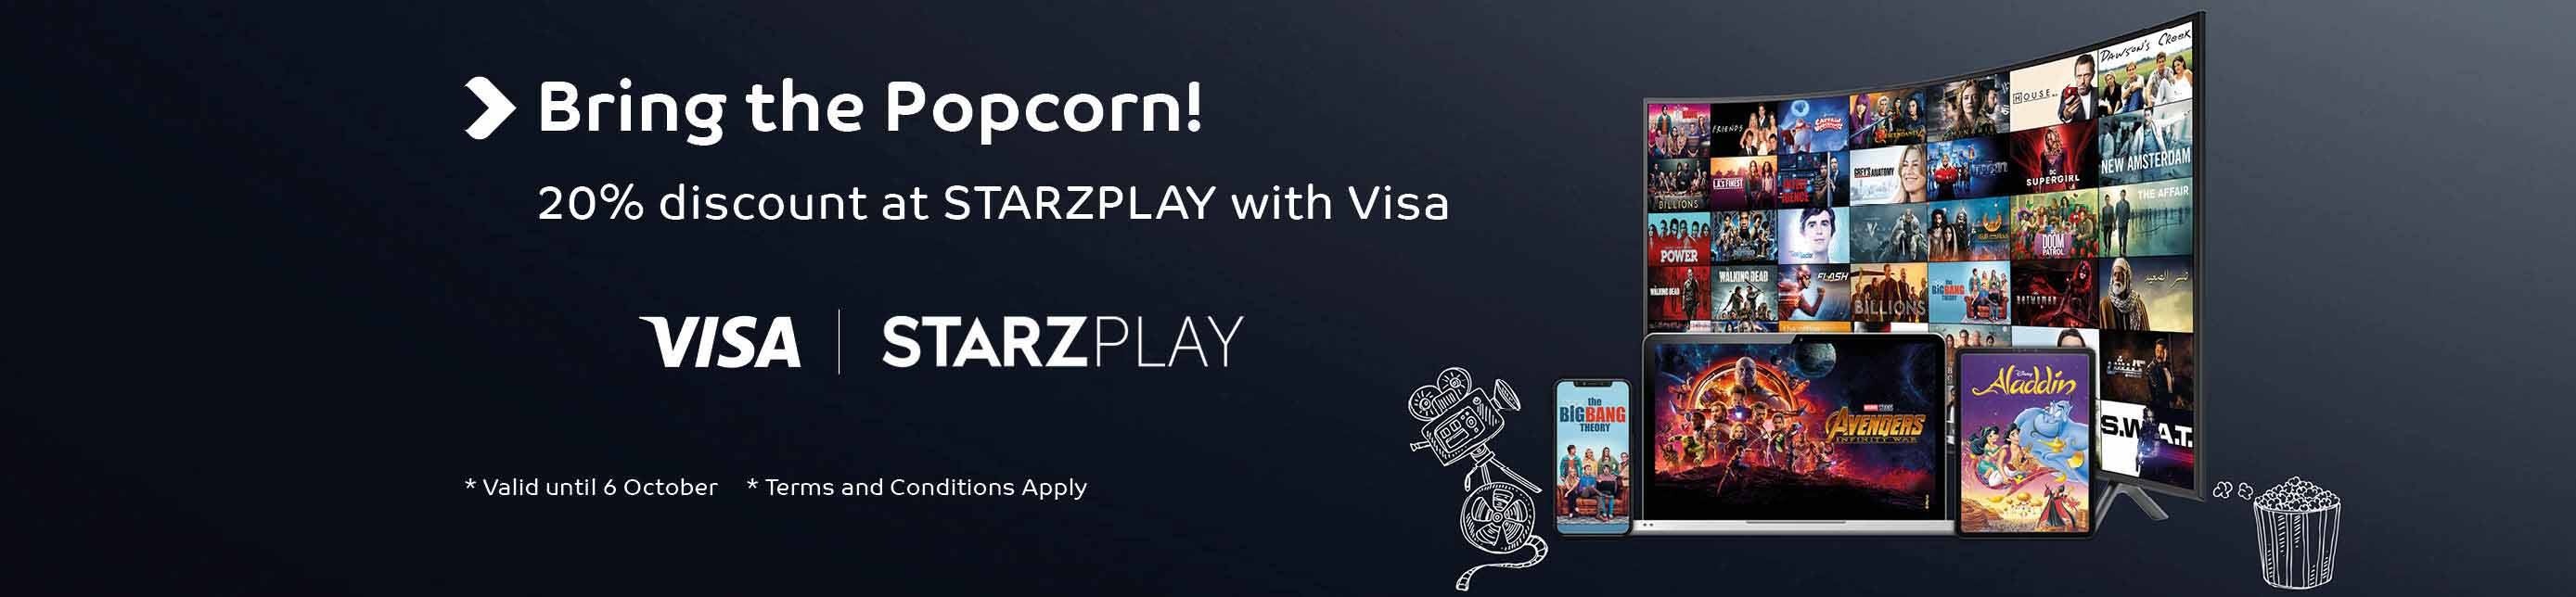 STARZPLAY and Visa Offer